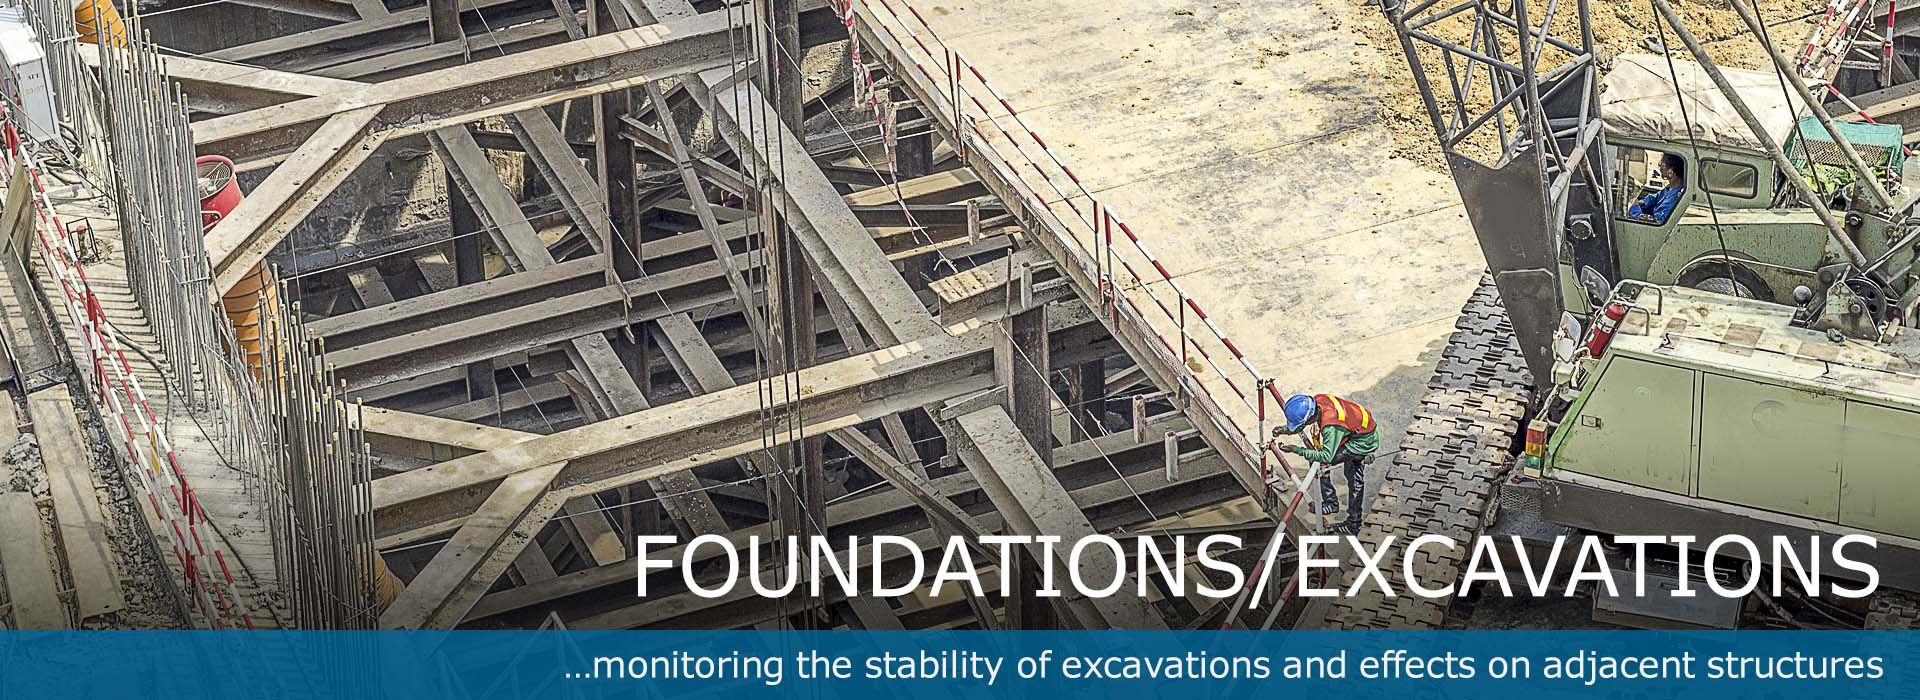 Geotechnical Instruments for Foundation Excavation